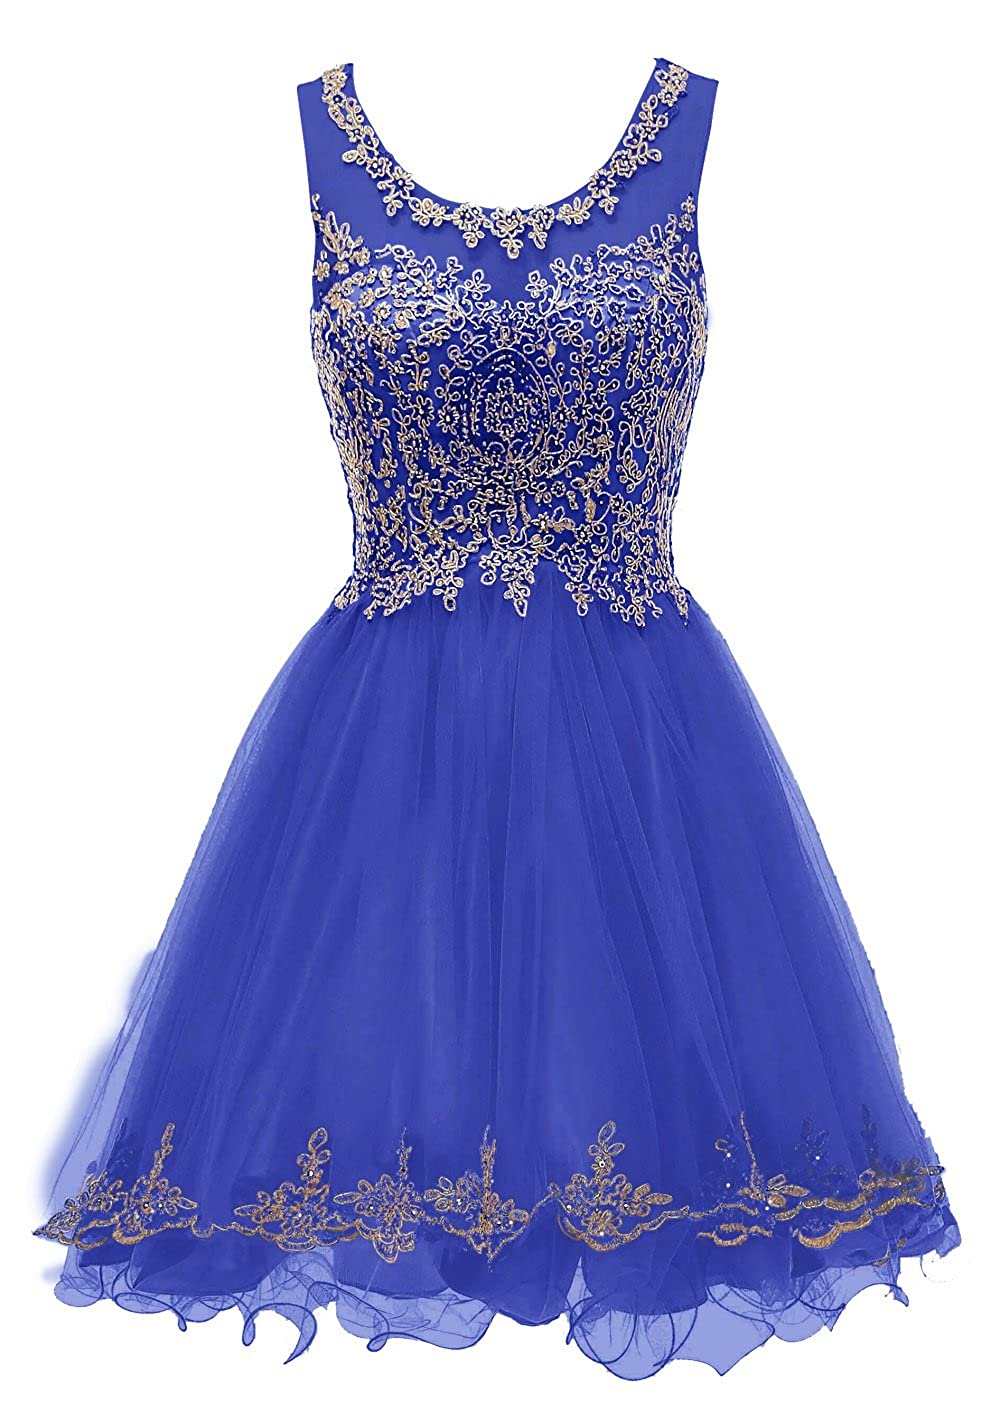 Royal bluee1189 SHANGSHANGXI Lace Appliques Short Prom Dresses Tulle Beaded Homecoming Party Dress